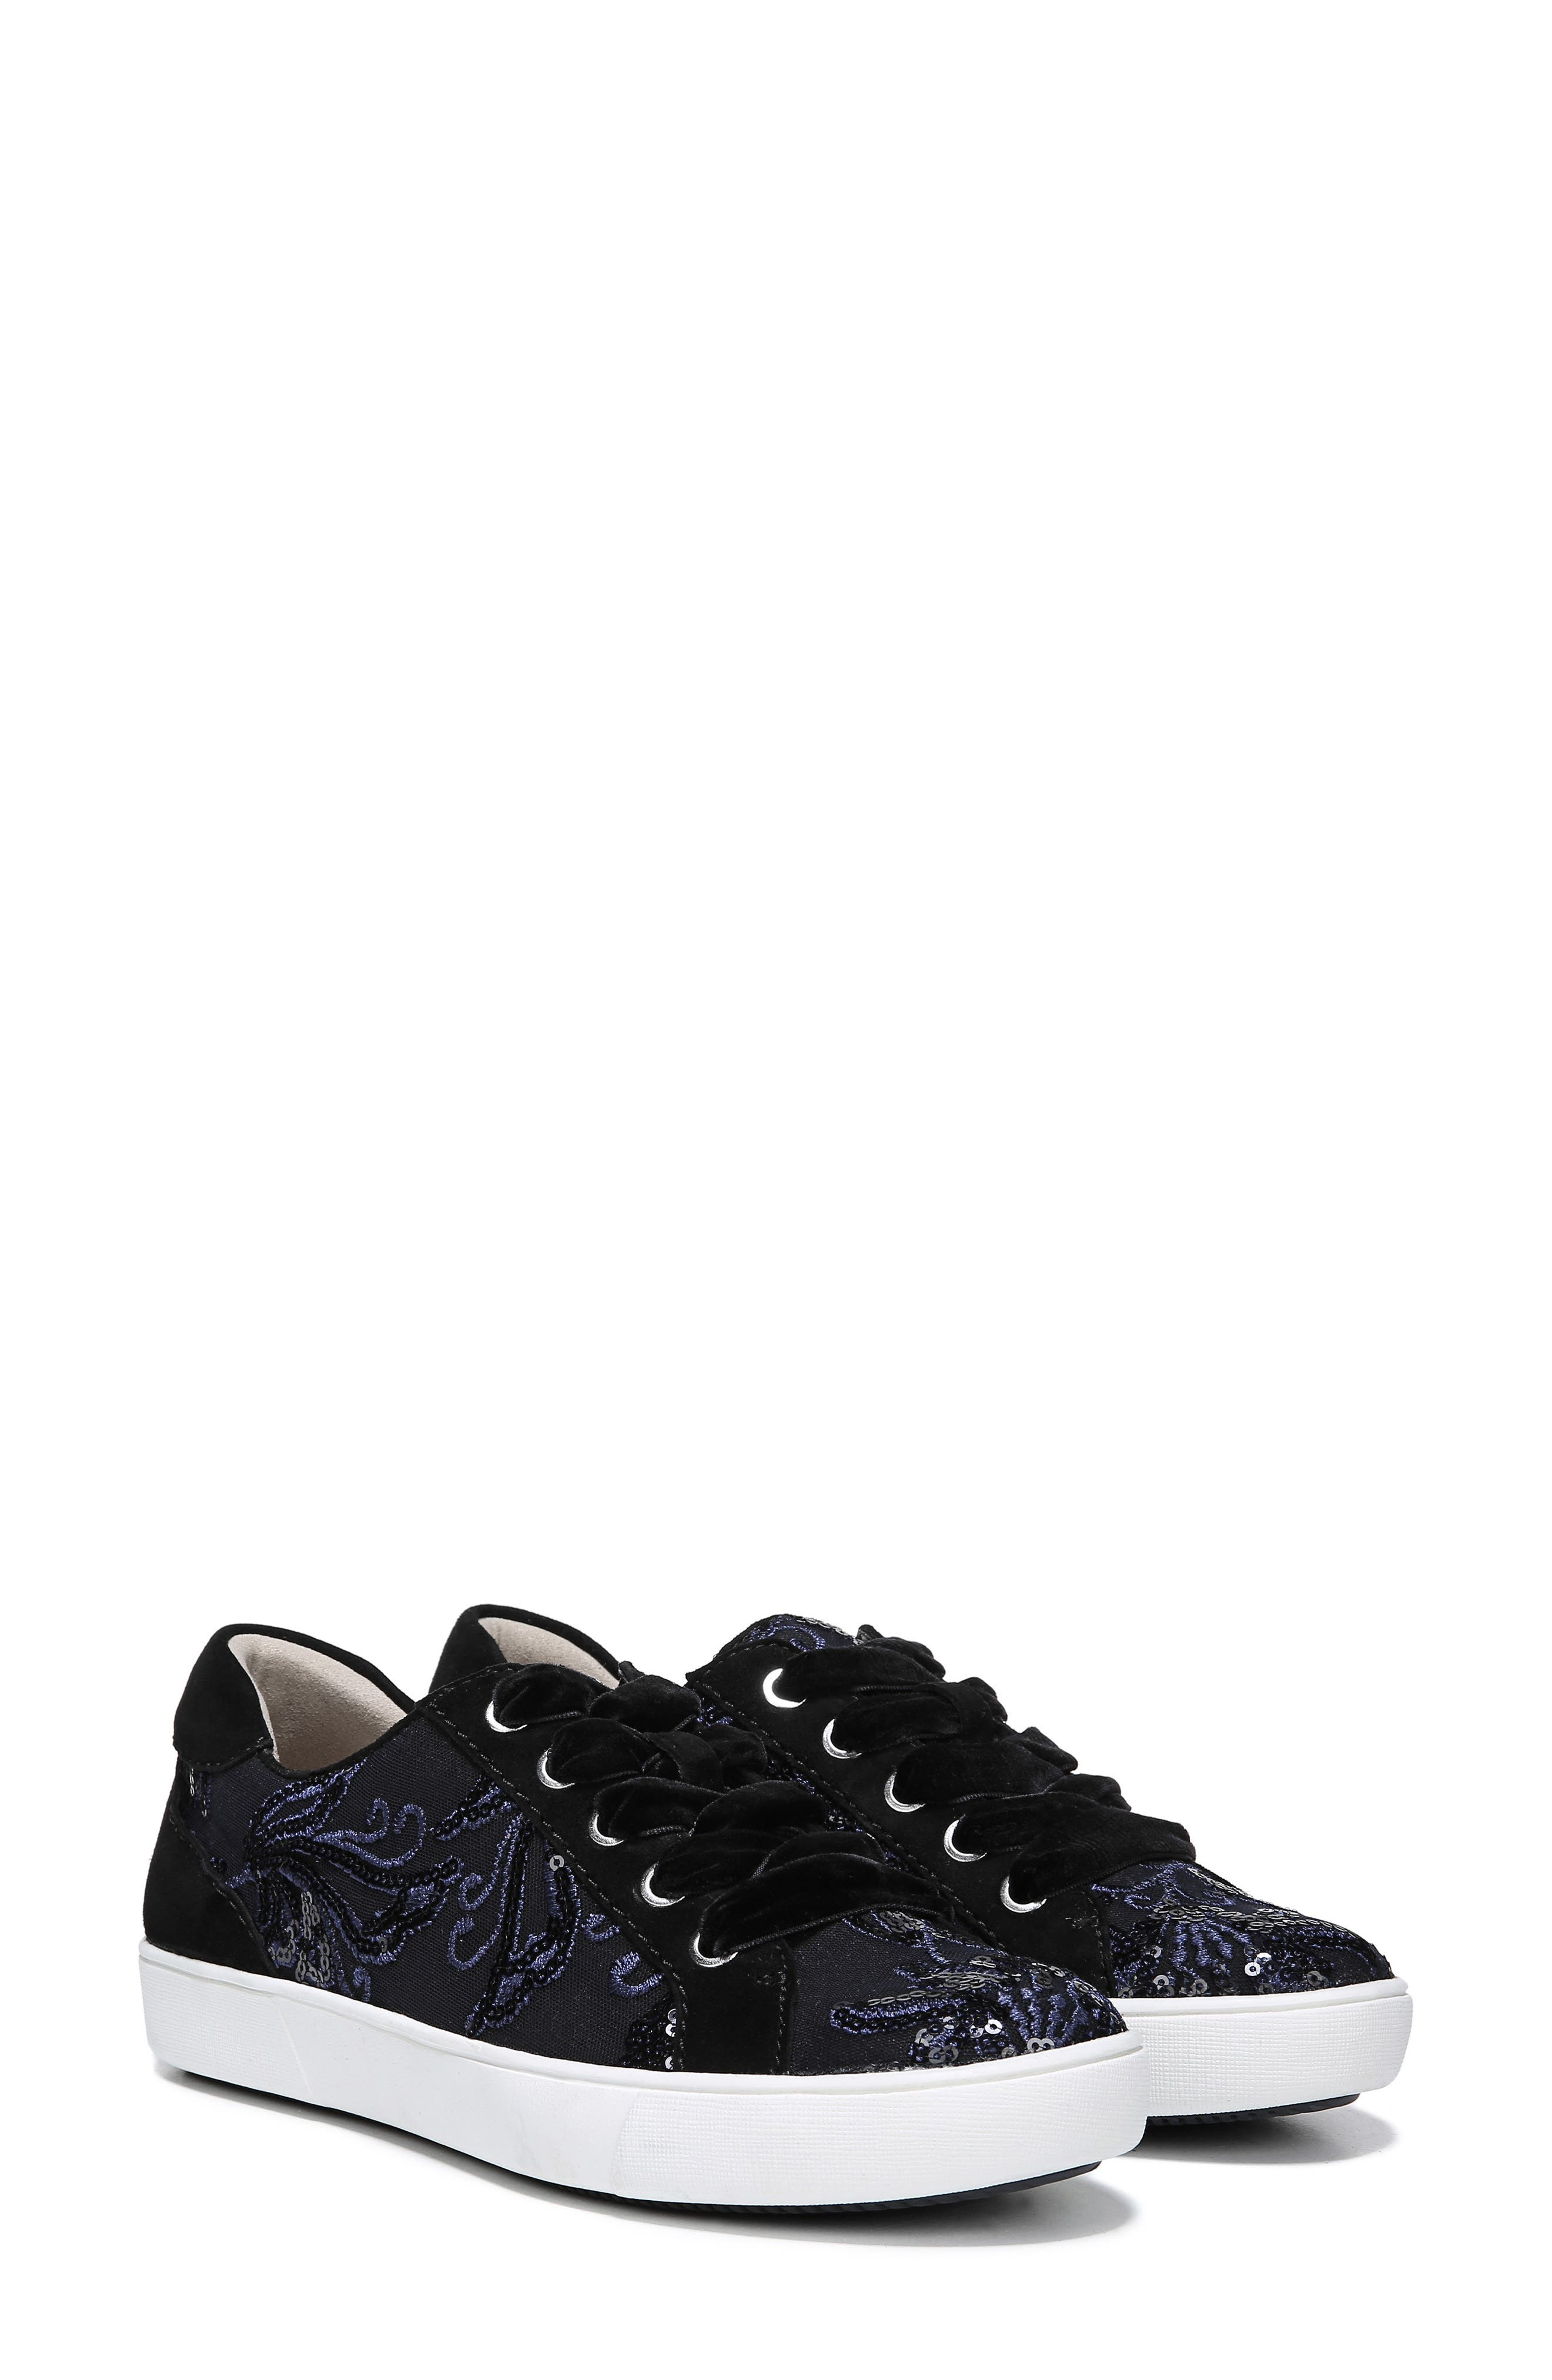 NATURALIZER, Morrison Sneaker, Alternate thumbnail 8, color, NAVY EMBROIDERED LACE